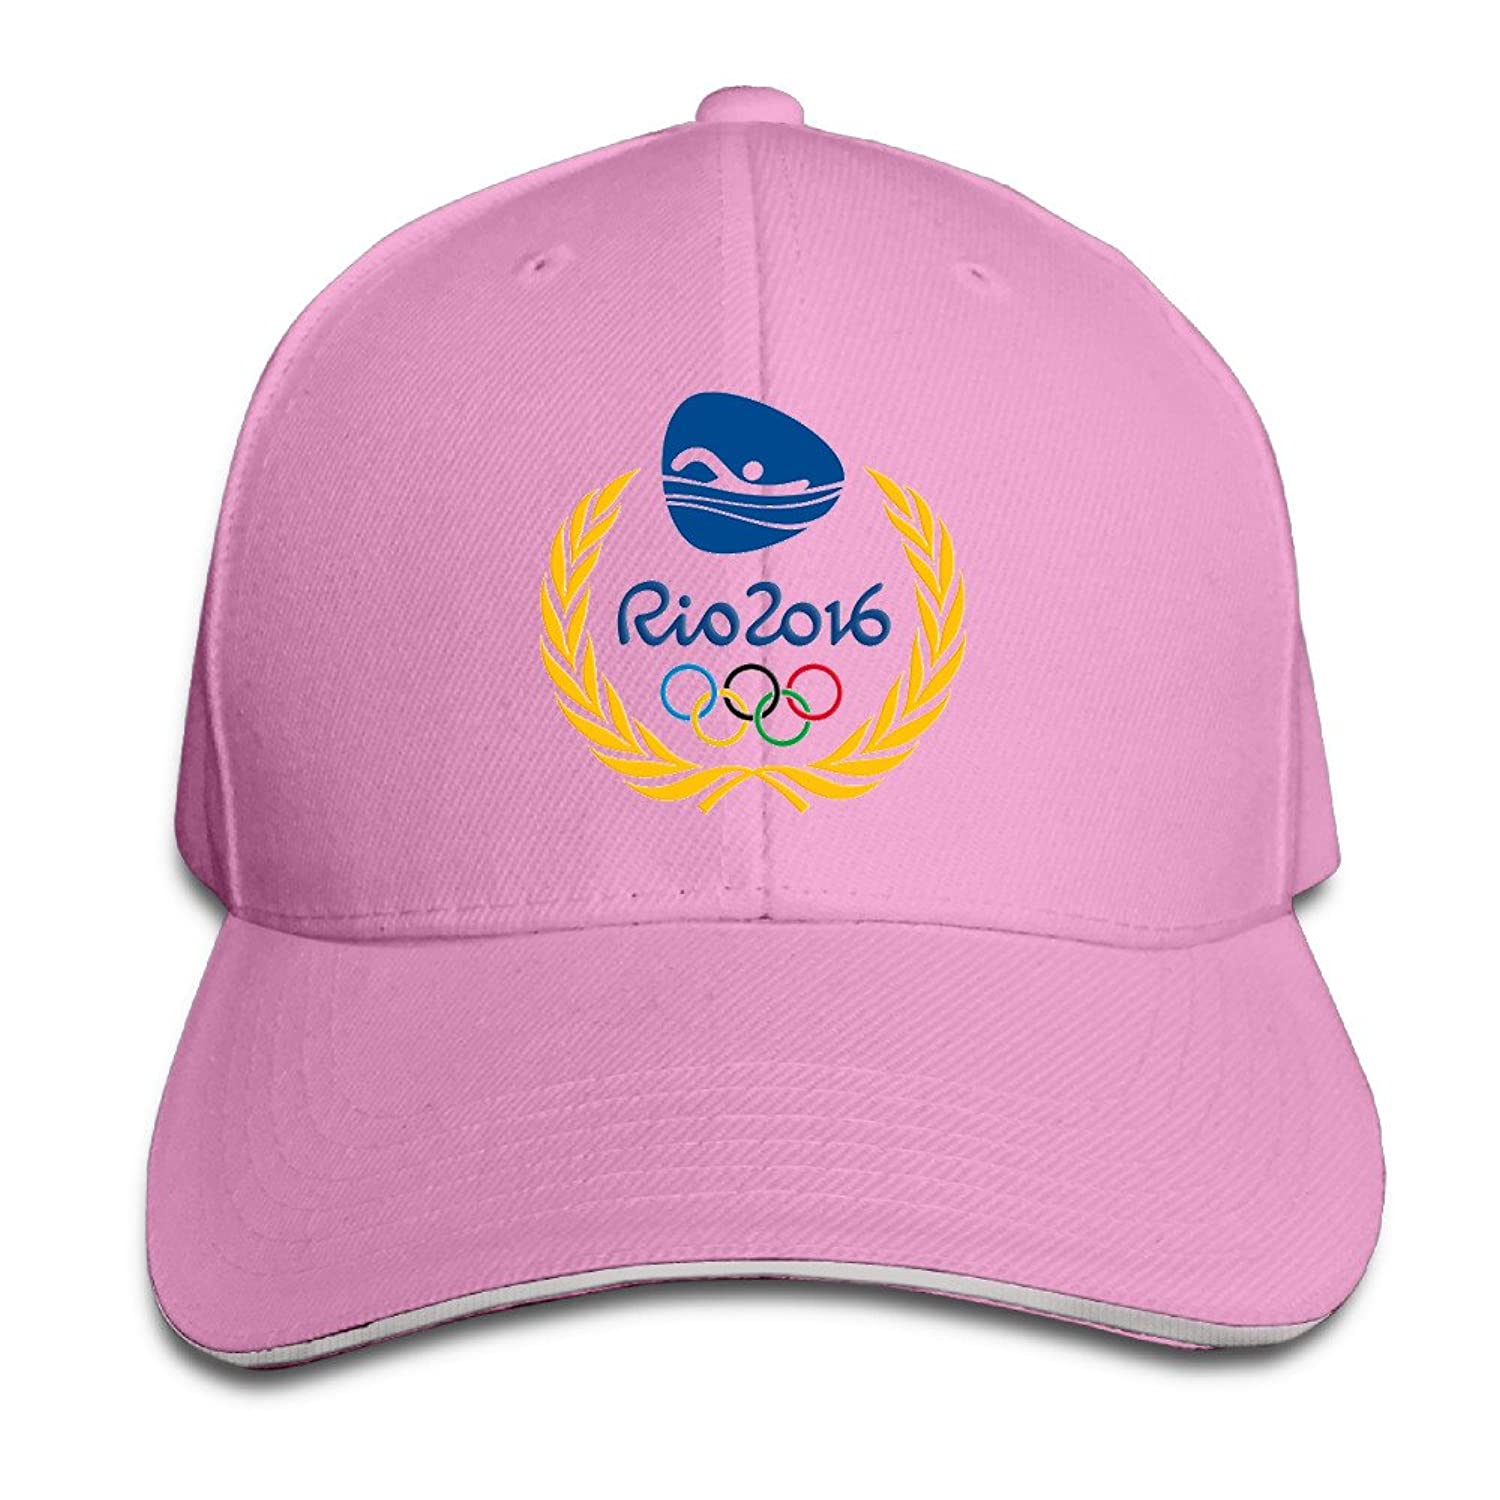 MYDT1 2016 Brazil Rio De Janeiro Olympic Games Swimming Outdoor Sandwich Peaked Caps Hats For Unisex